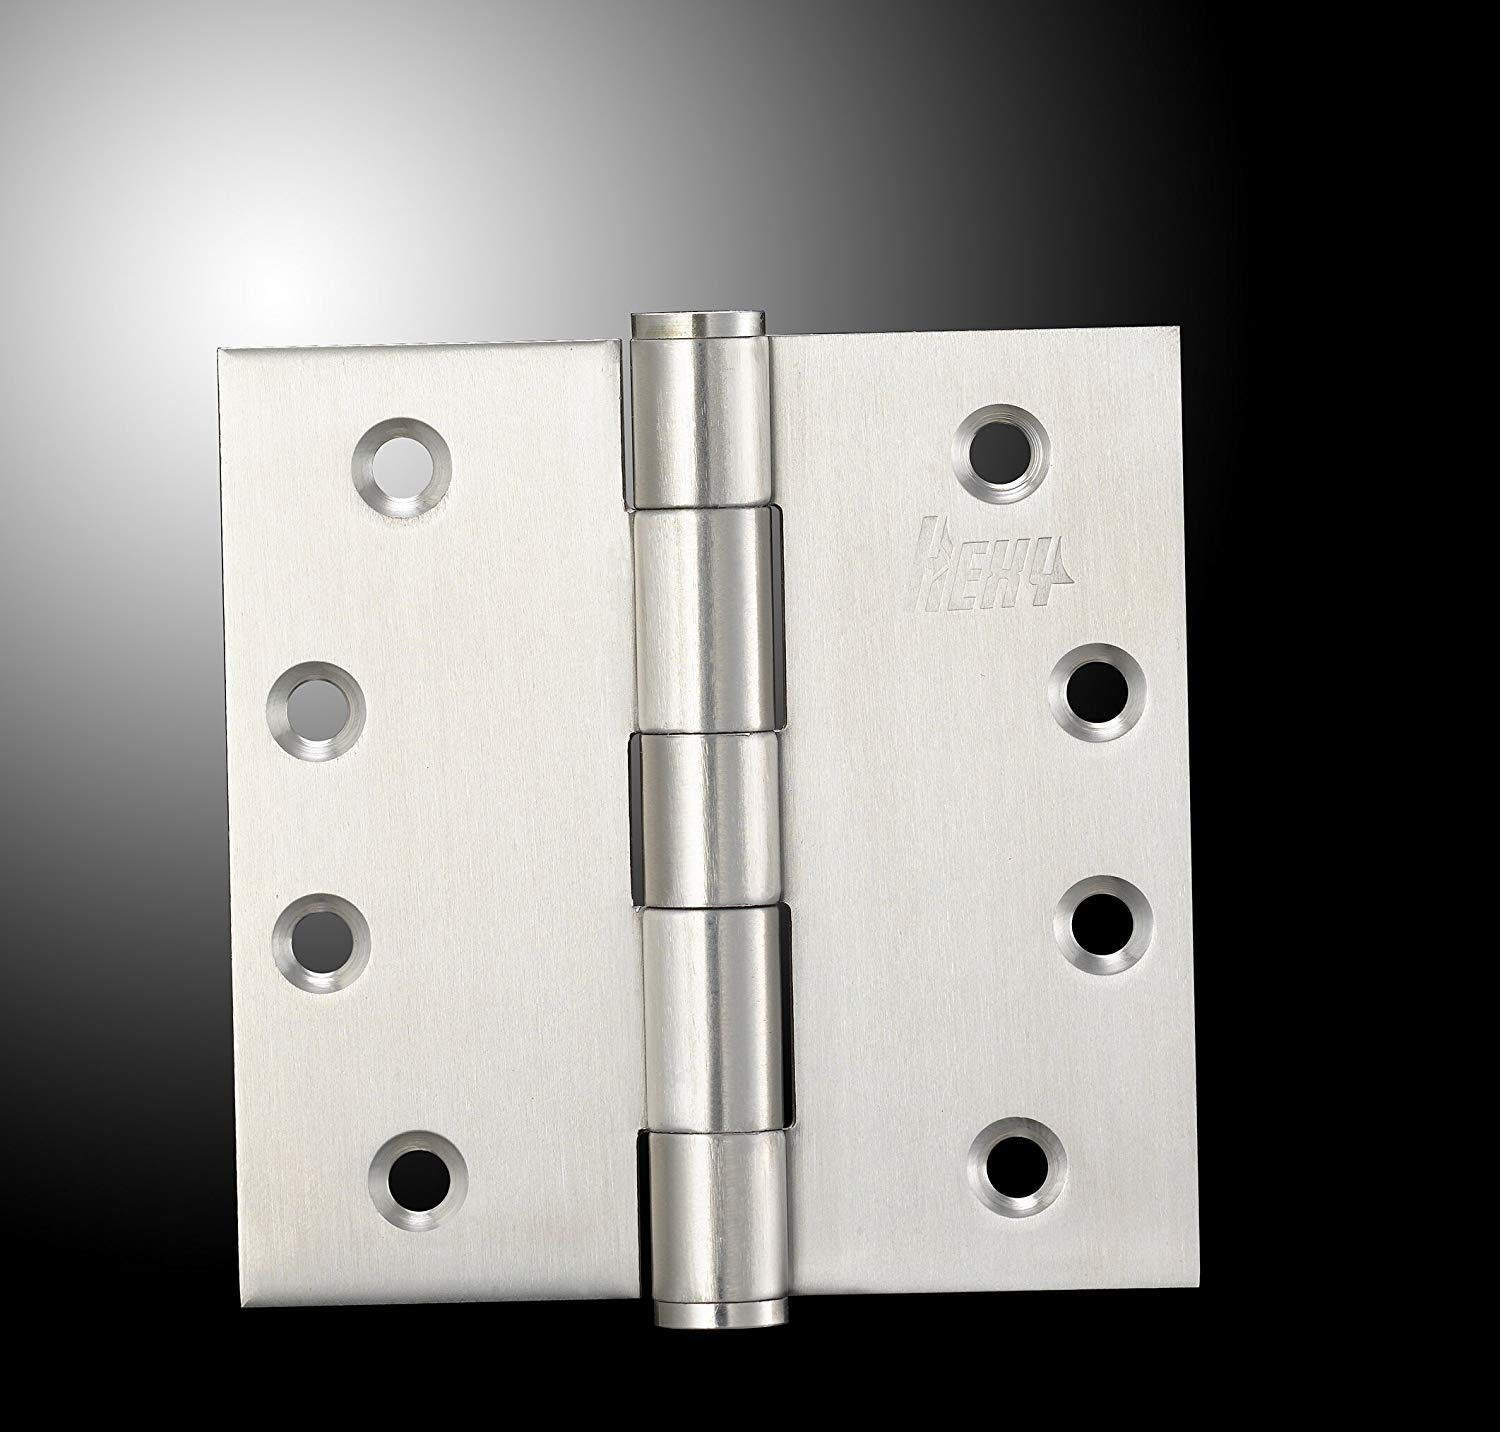 4 x 4 in x 2.5mm - Square Corner- 3 Pieces 3, Square Corner Hexy-304 Stainless Steel Heavy Duty Door Hinges Commercial Grade